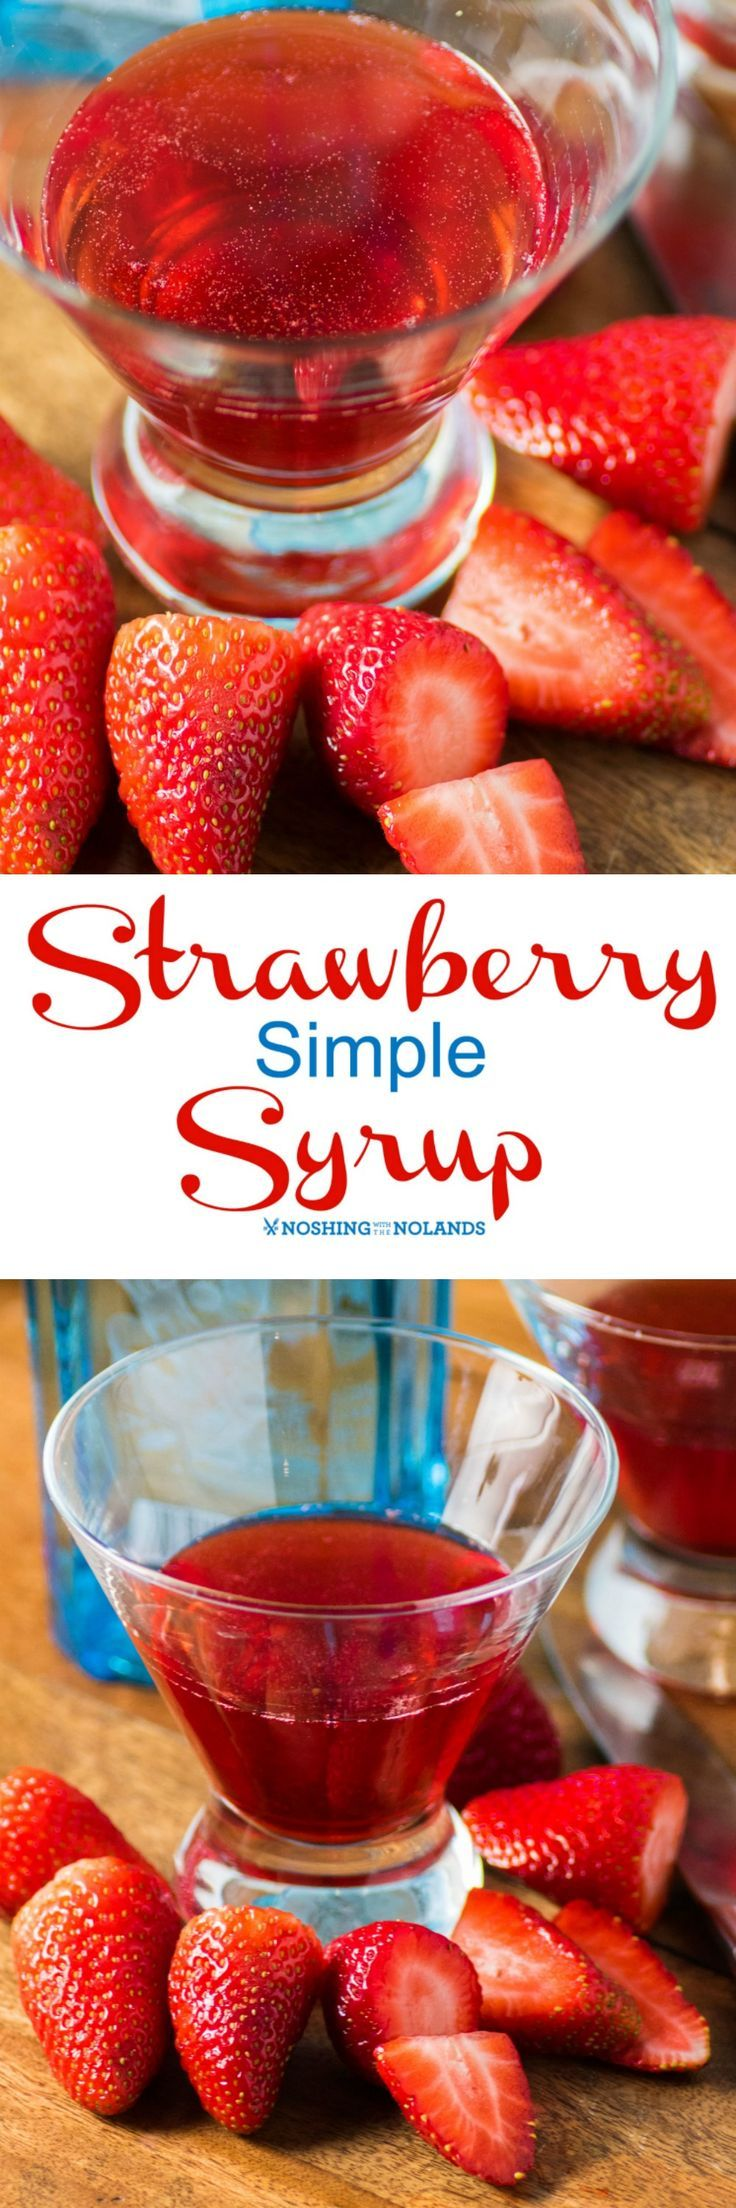 Strawberry Simple Syrup by Noshing With The Nolands is a great addition to mocktails and cocktails or you can use it as a glaze for cake and ice cream!